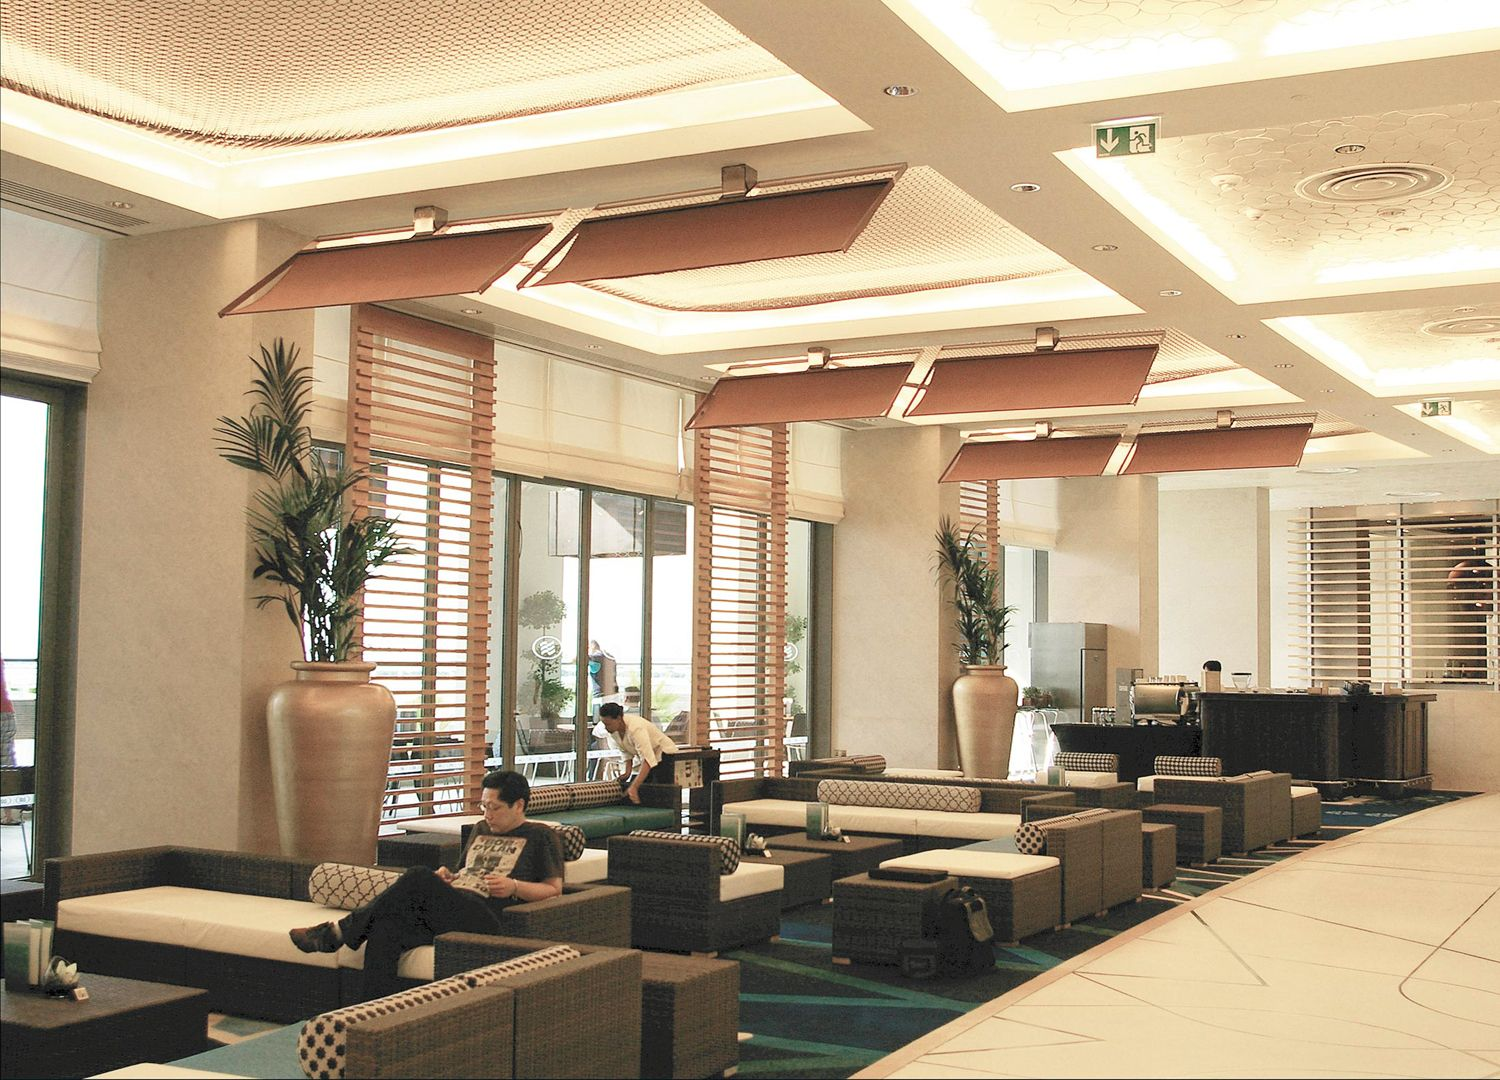 The Solitaire Punkah Swinging Ceiling Fans At Crowne Plaza Abu Dhabi All Are Wirelessly